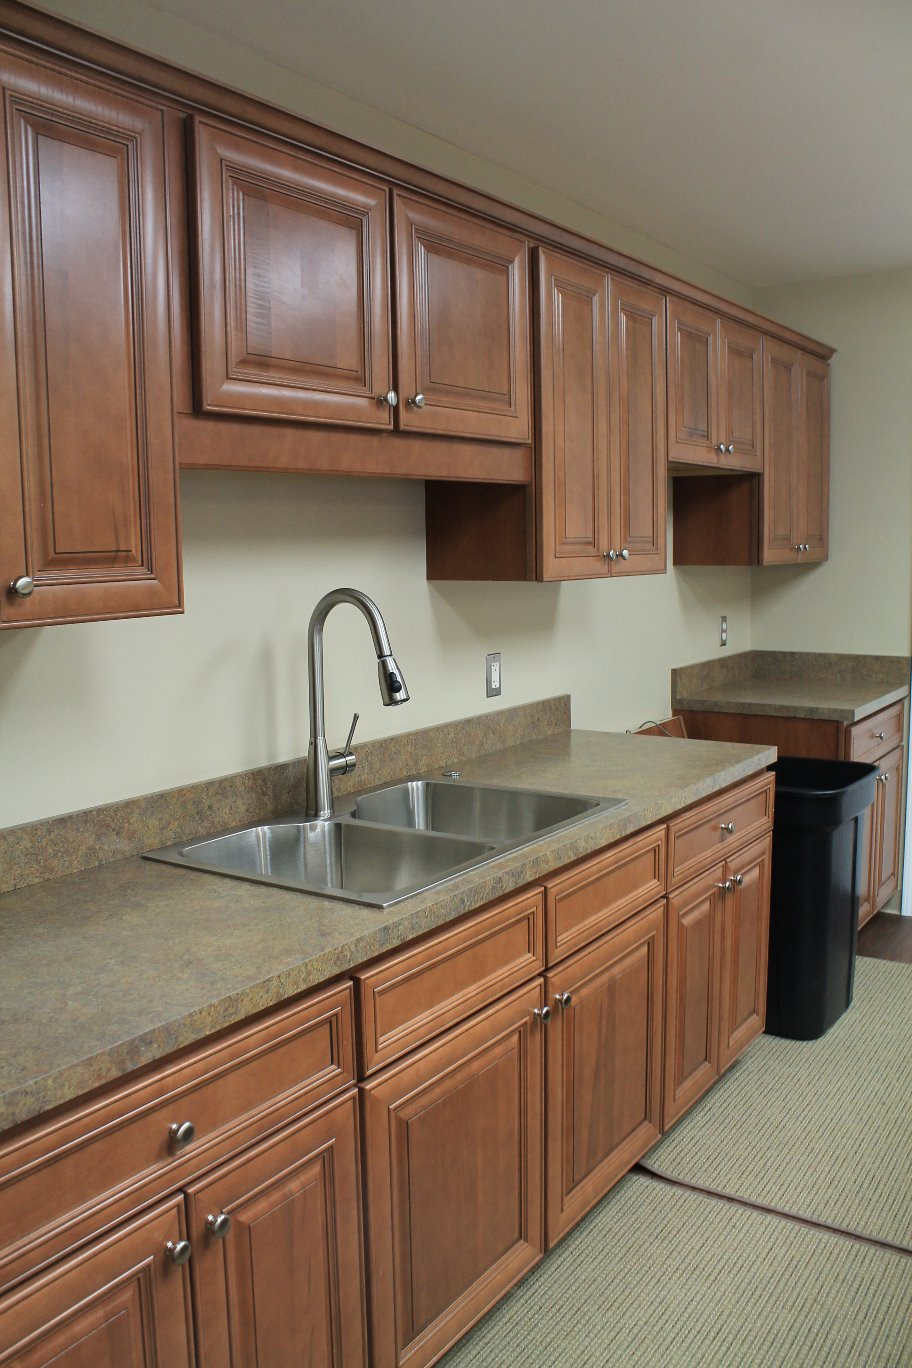 /GroffFuneralHome/the-legacy-center-rental-facility/kitchen2.jpg